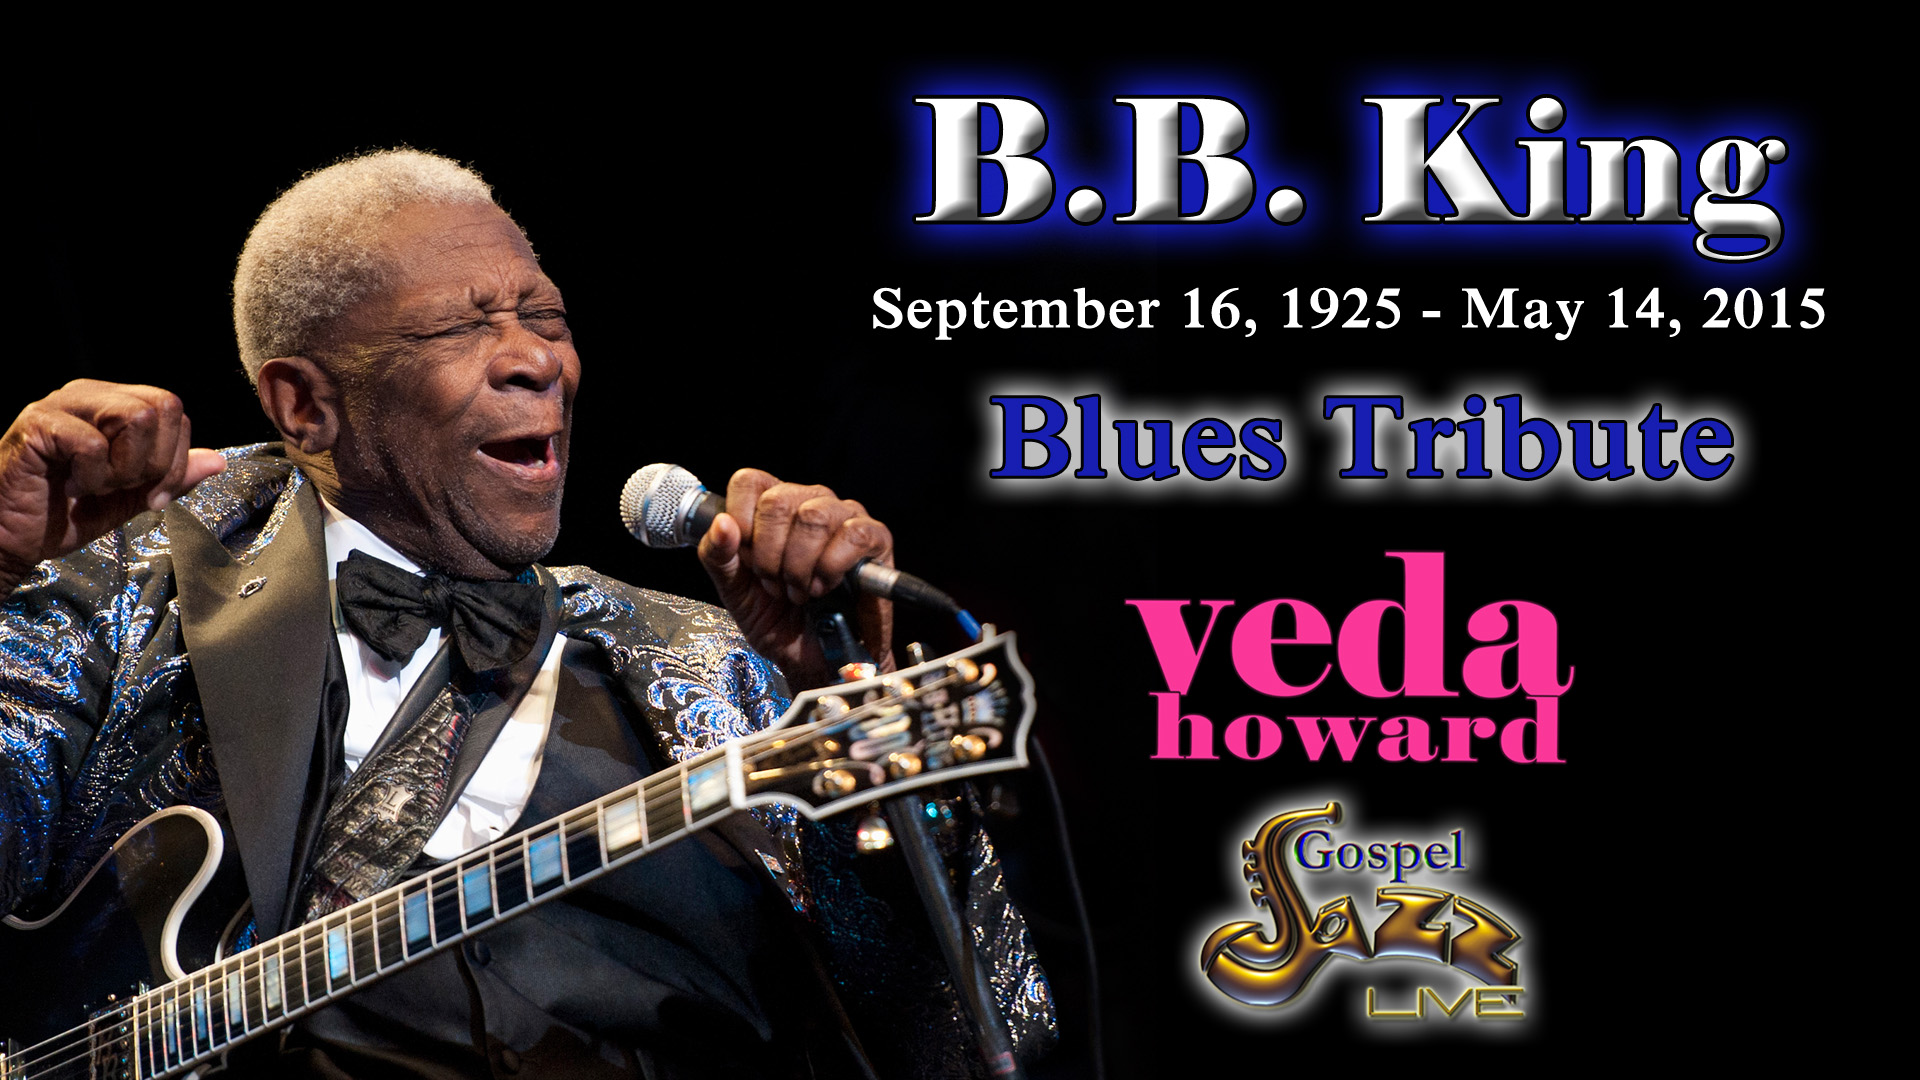 Gospel Jazz Live B.B. King Tribute